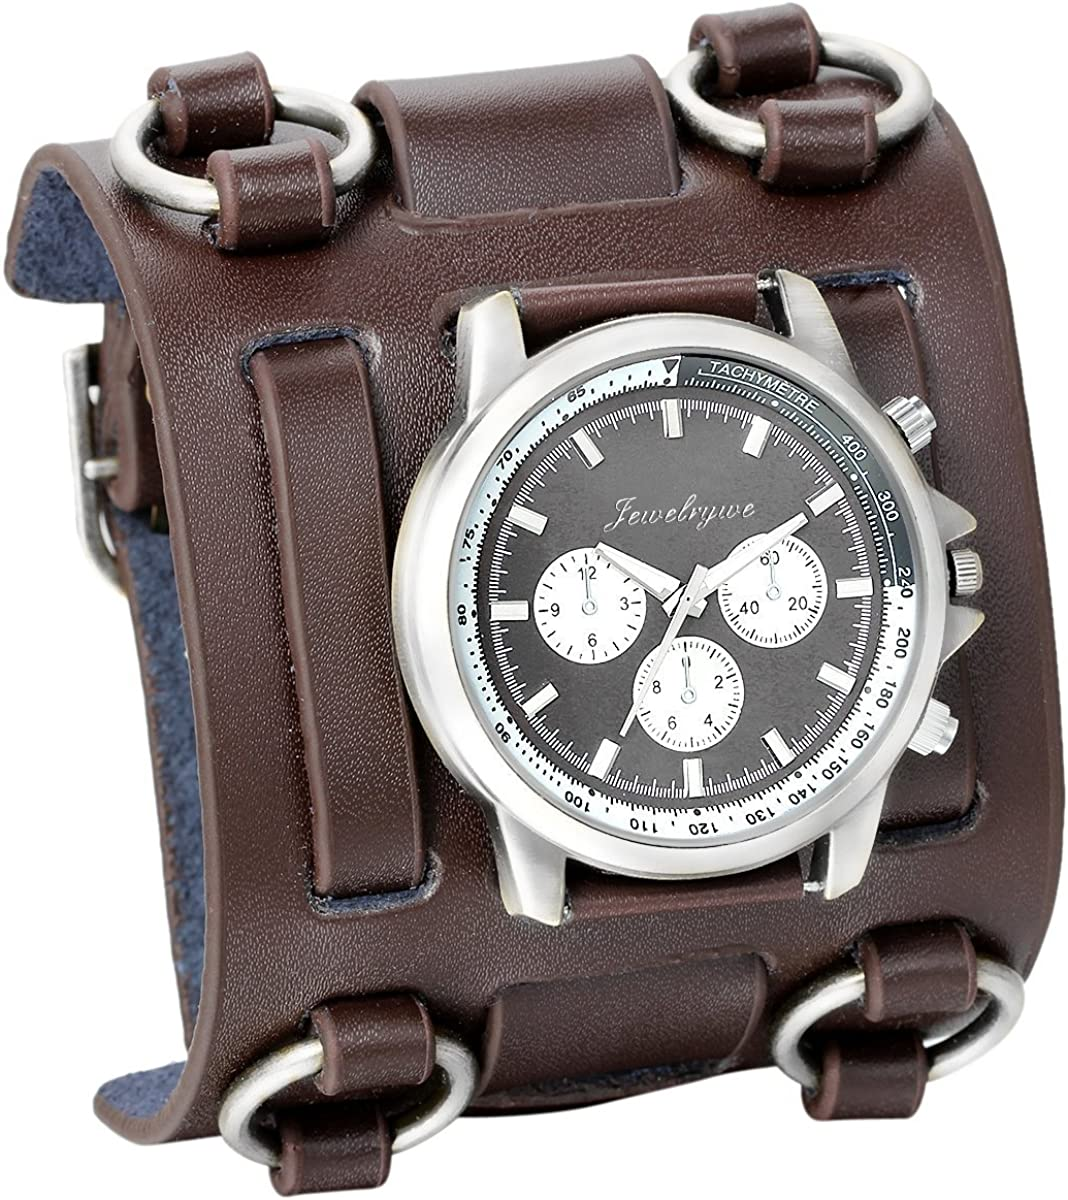 JewelryWe Black Brown Hip-hop Gothic Punk Style Men Watch Wide Leather Fashion Cuff Wristwatch for Halloween(5 Colors)